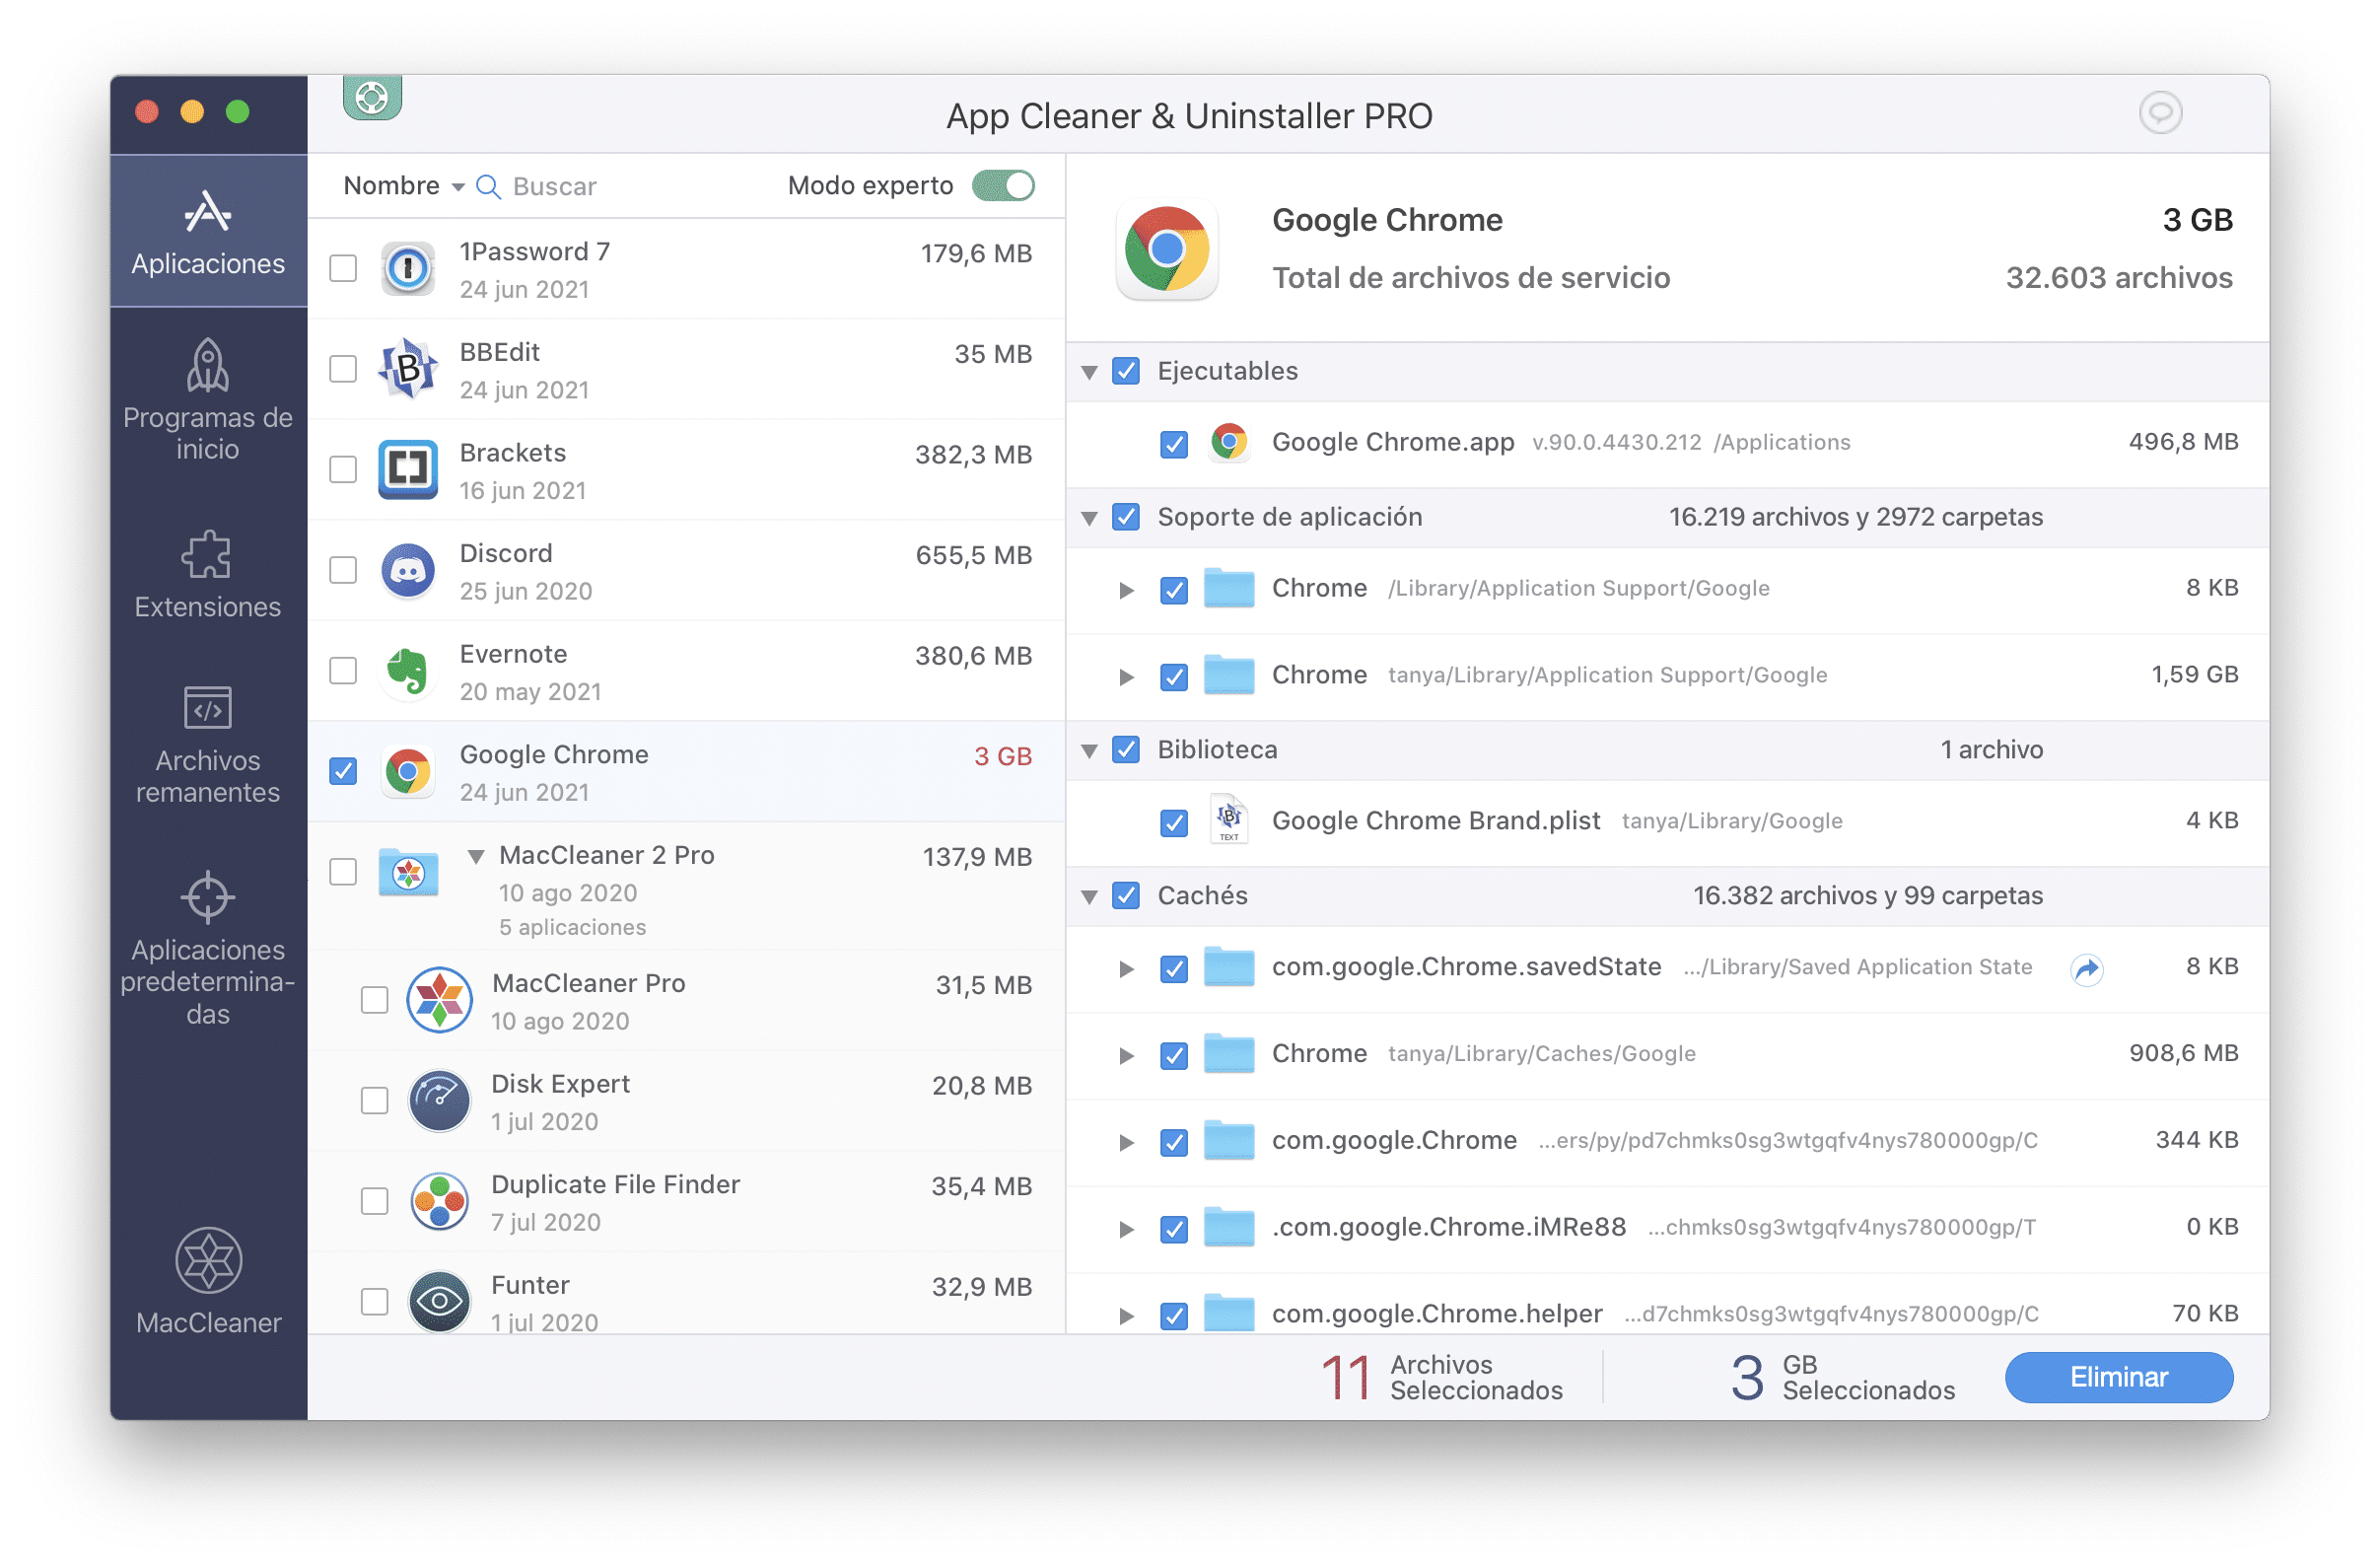 app cleaner applications